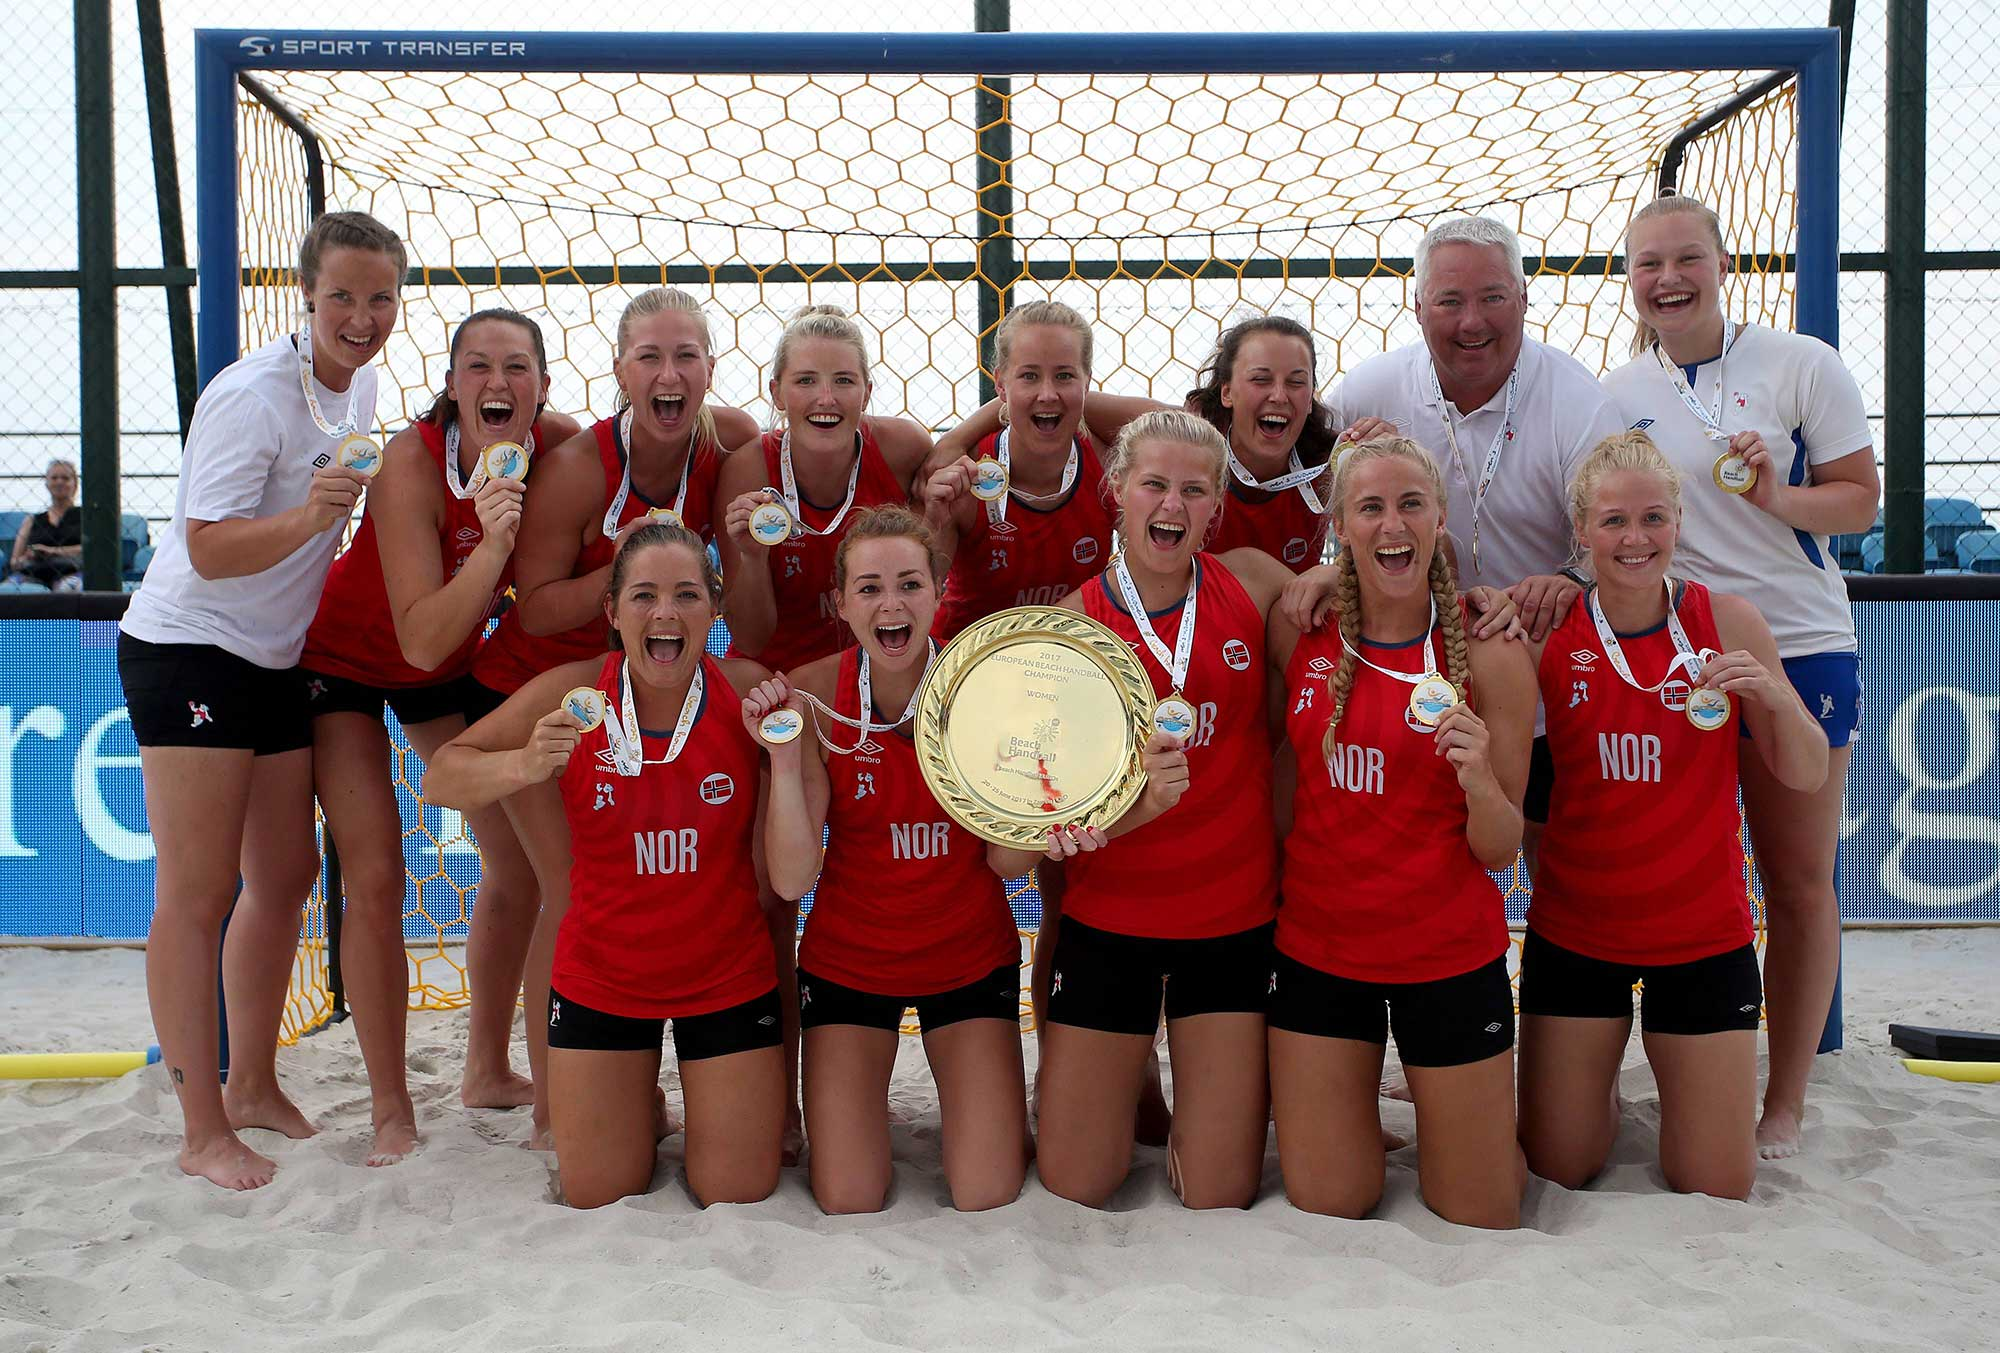 Rebelling Against Sexism: Can The Norwegian Handball Association Improve Conditions For Female Athletes?